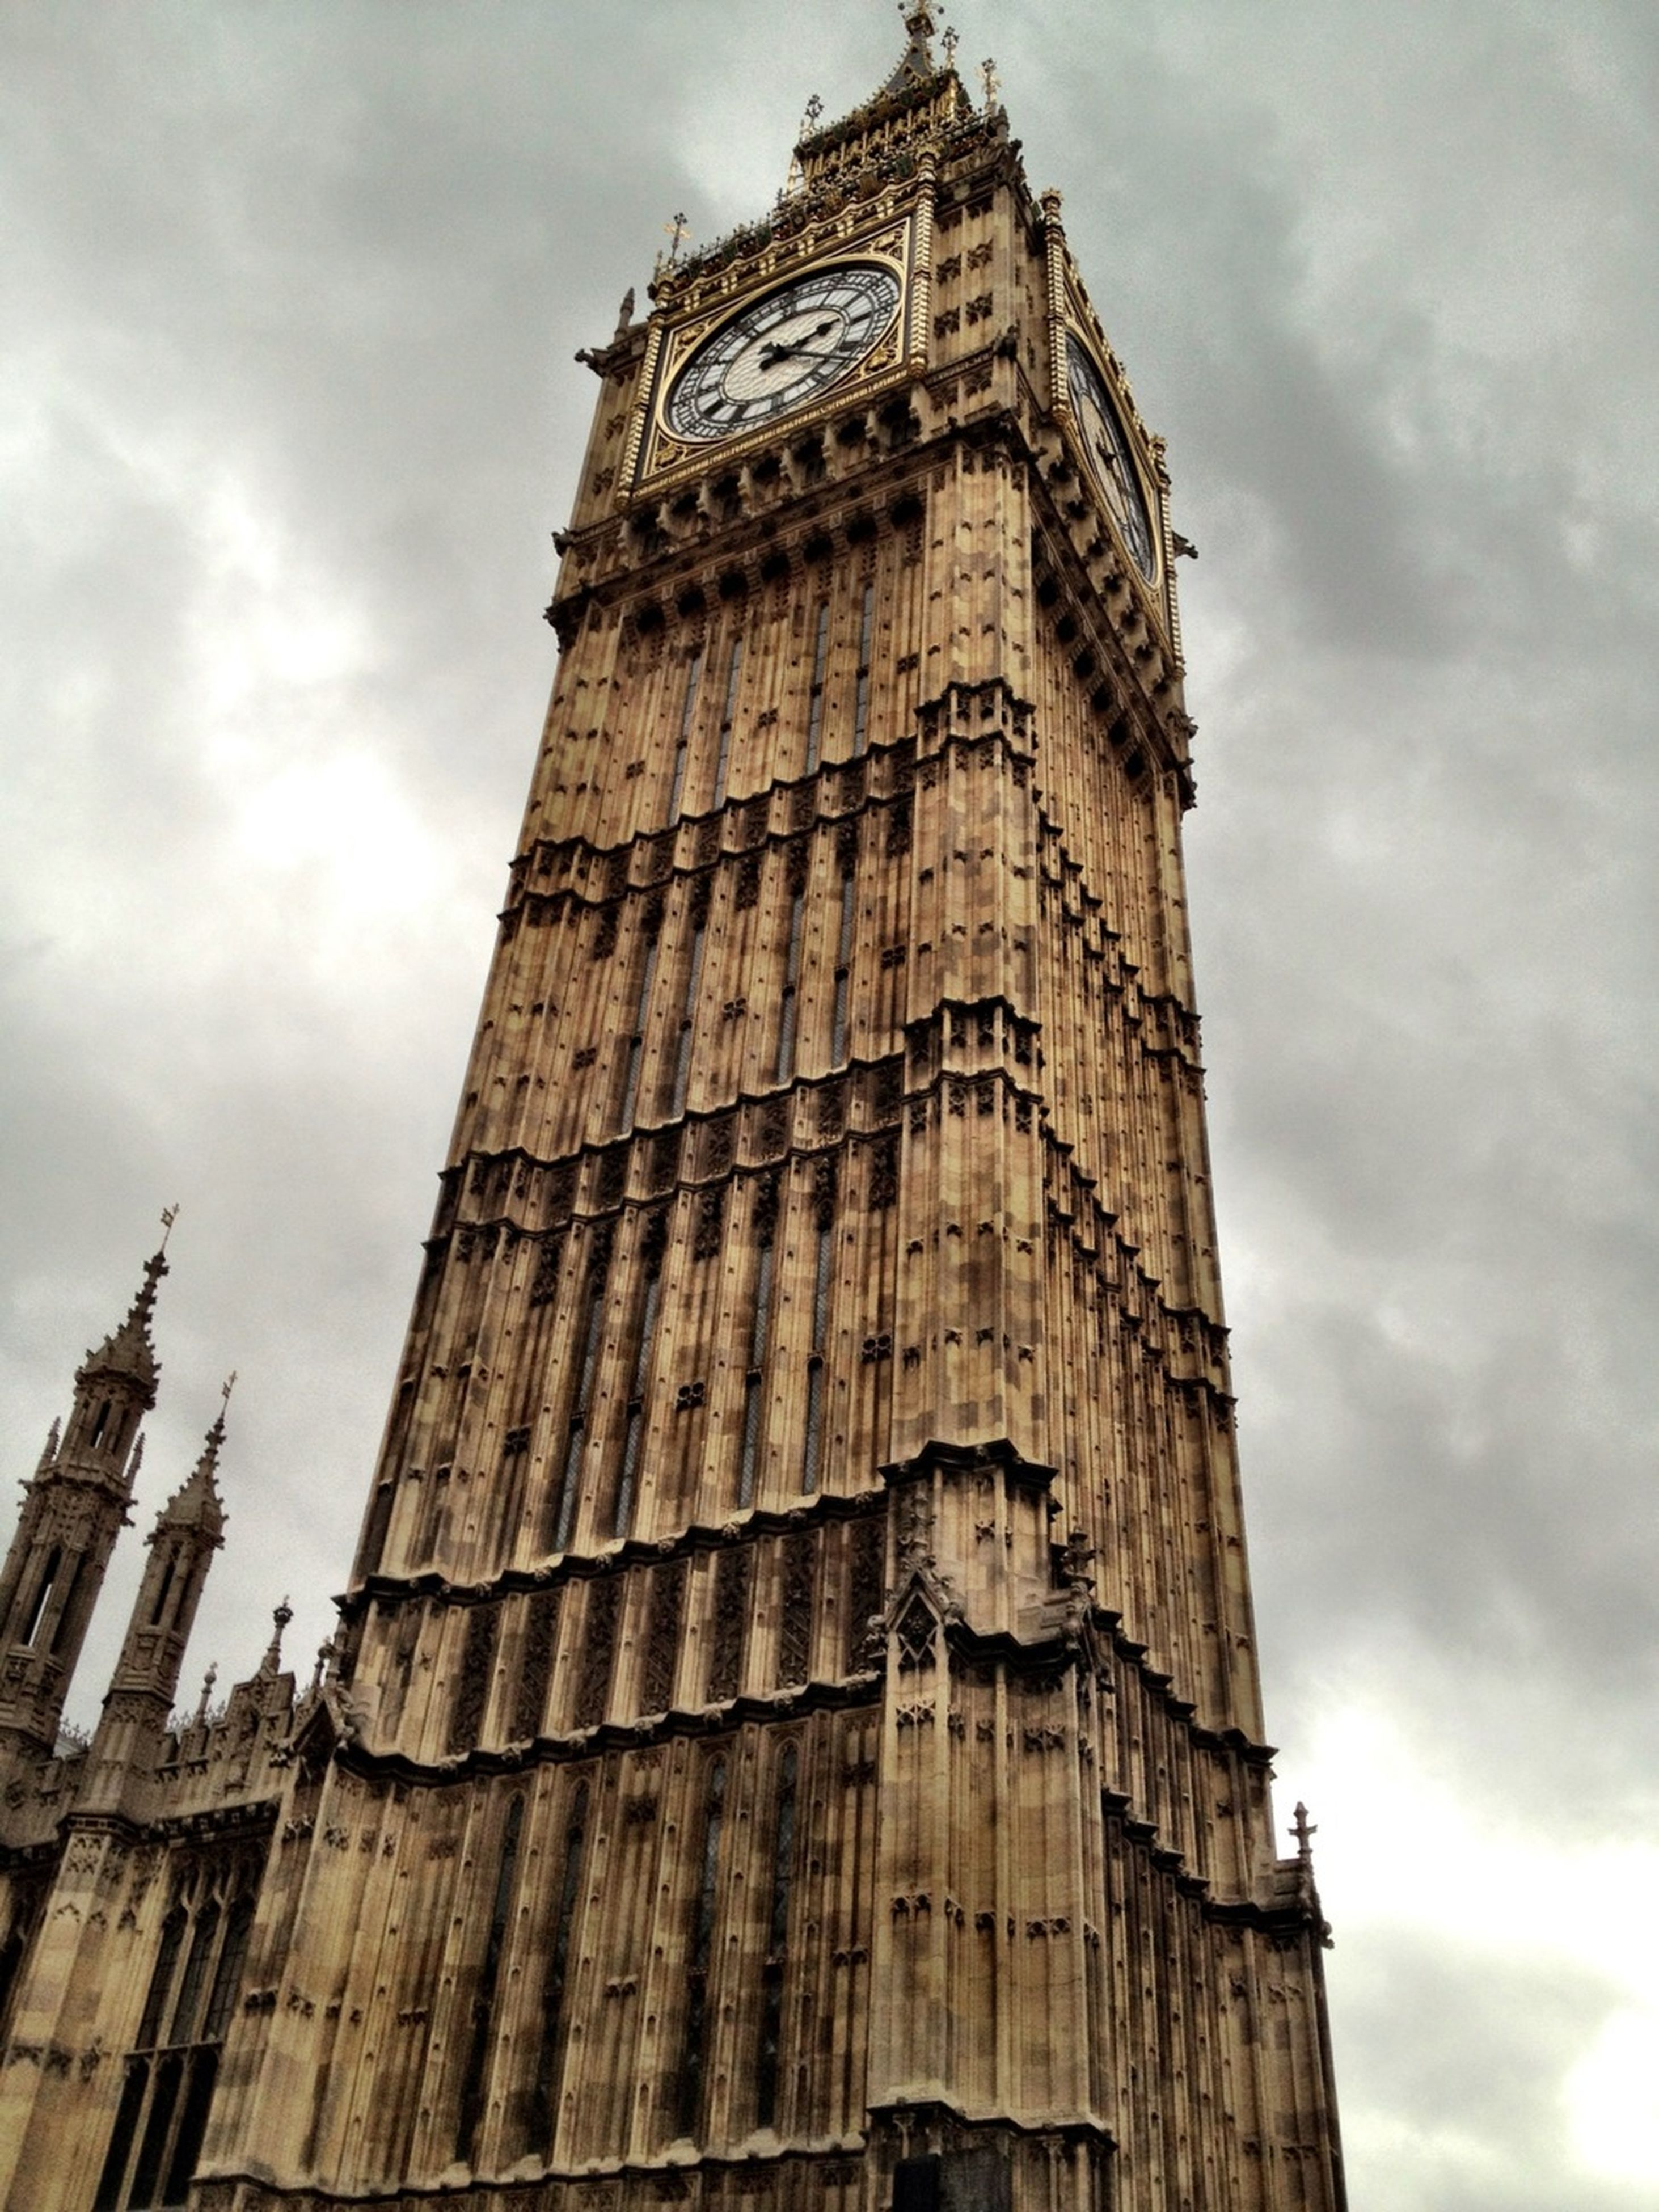 architecture, building exterior, built structure, low angle view, sky, tower, cloud - sky, tall - high, famous place, history, travel destinations, cloudy, city, cloud, clock tower, travel, tourism, capital cities, religion, international landmark